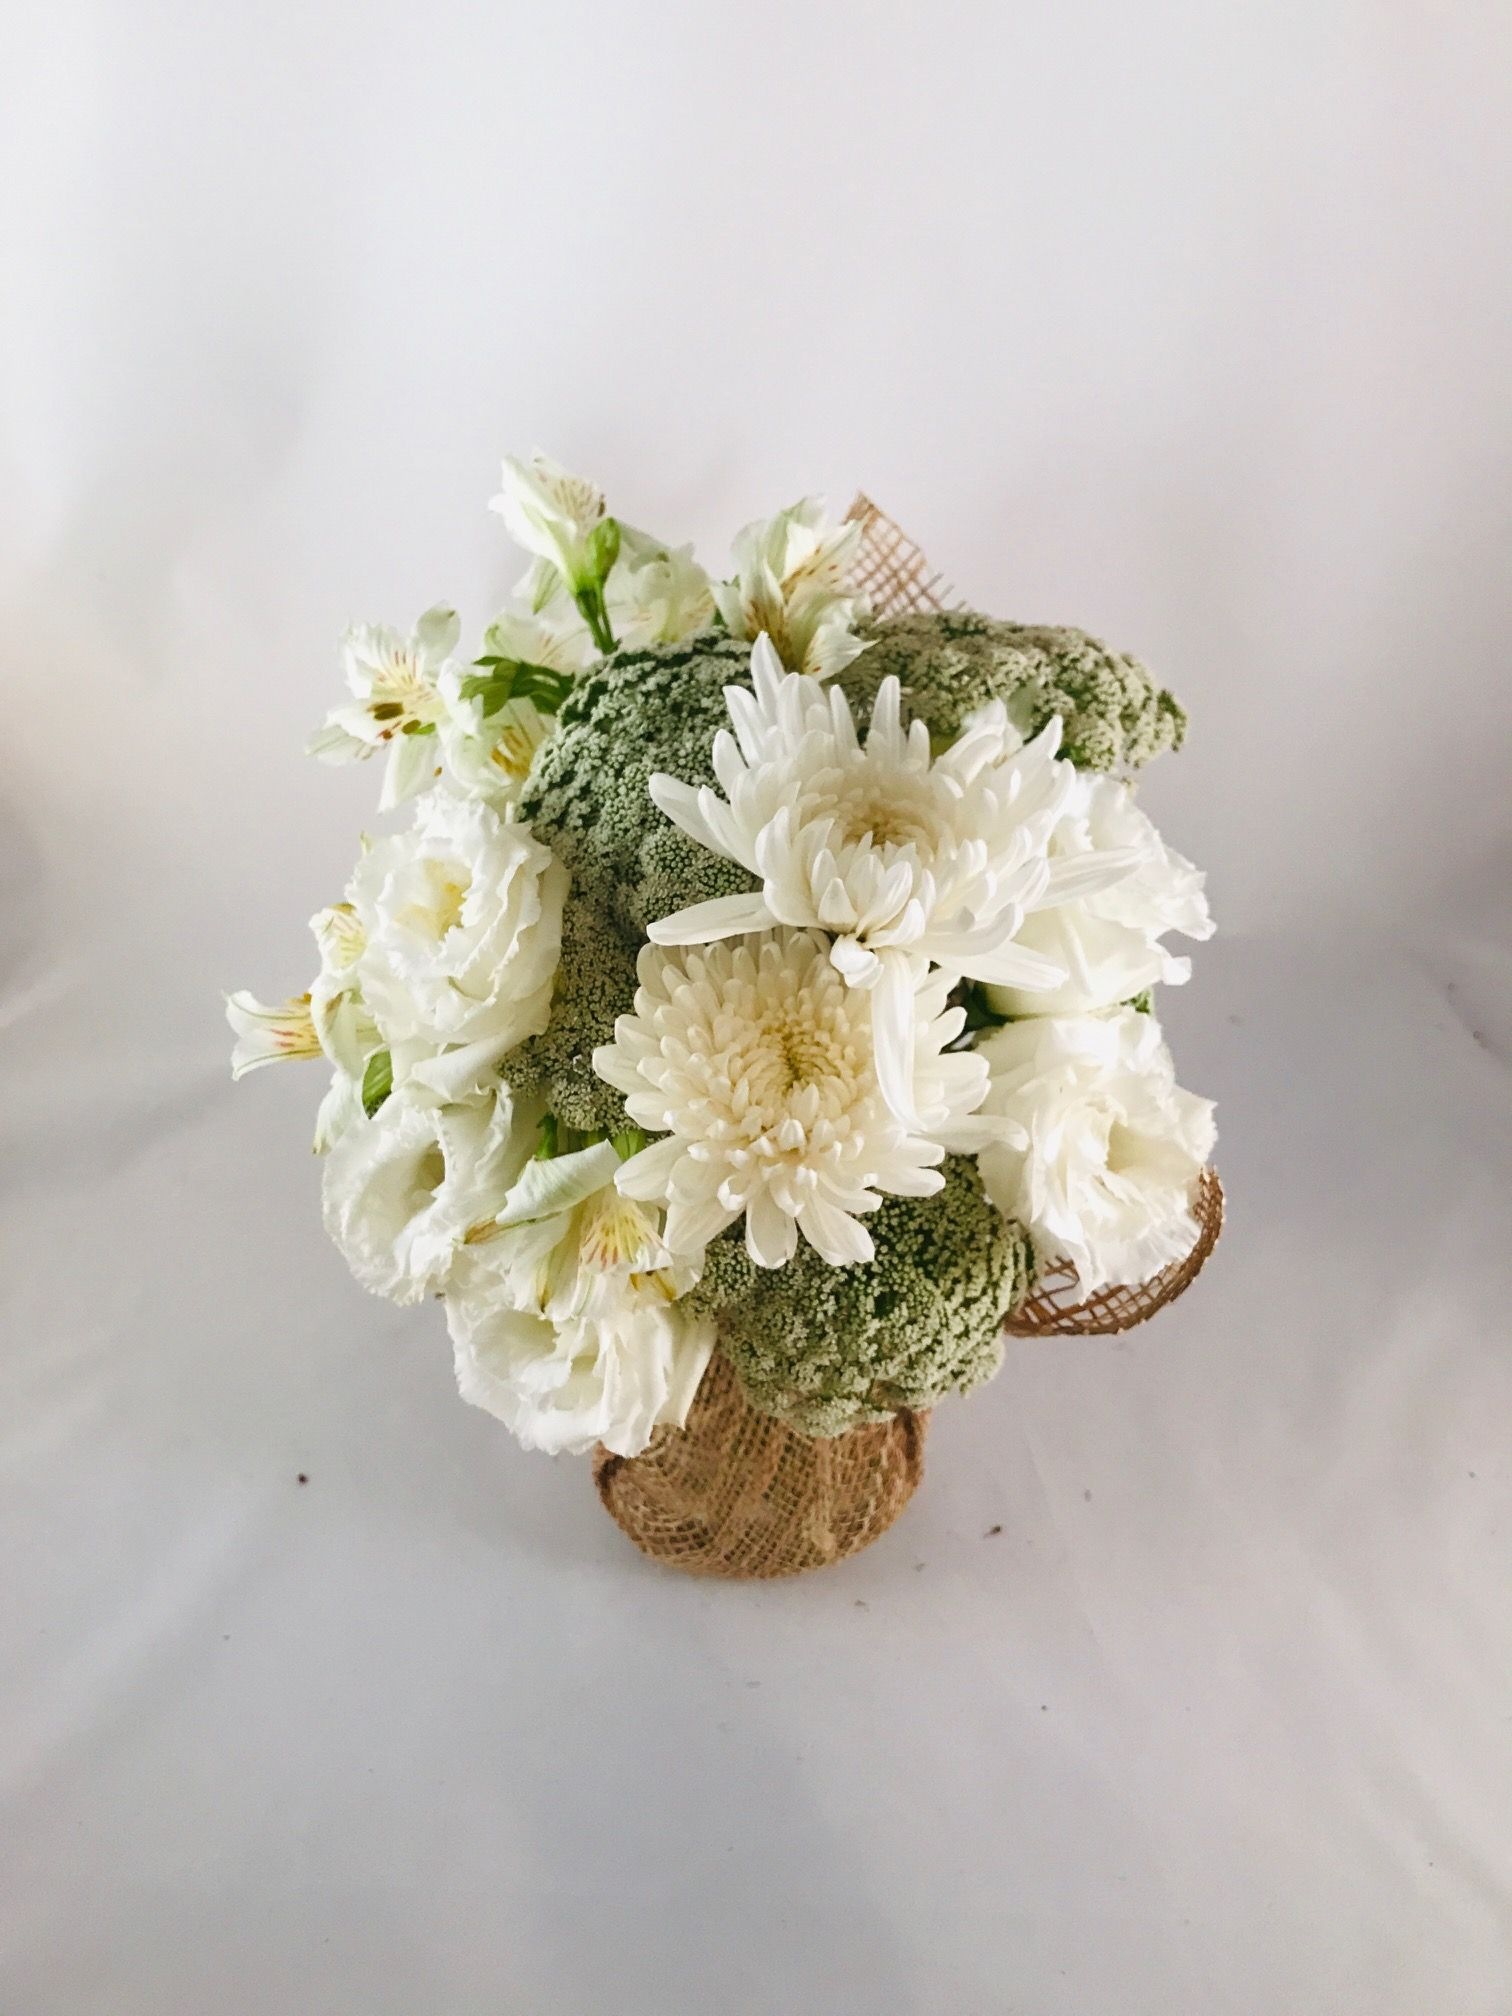 queen annes lace, jimba, lisianthus and alstroemeria